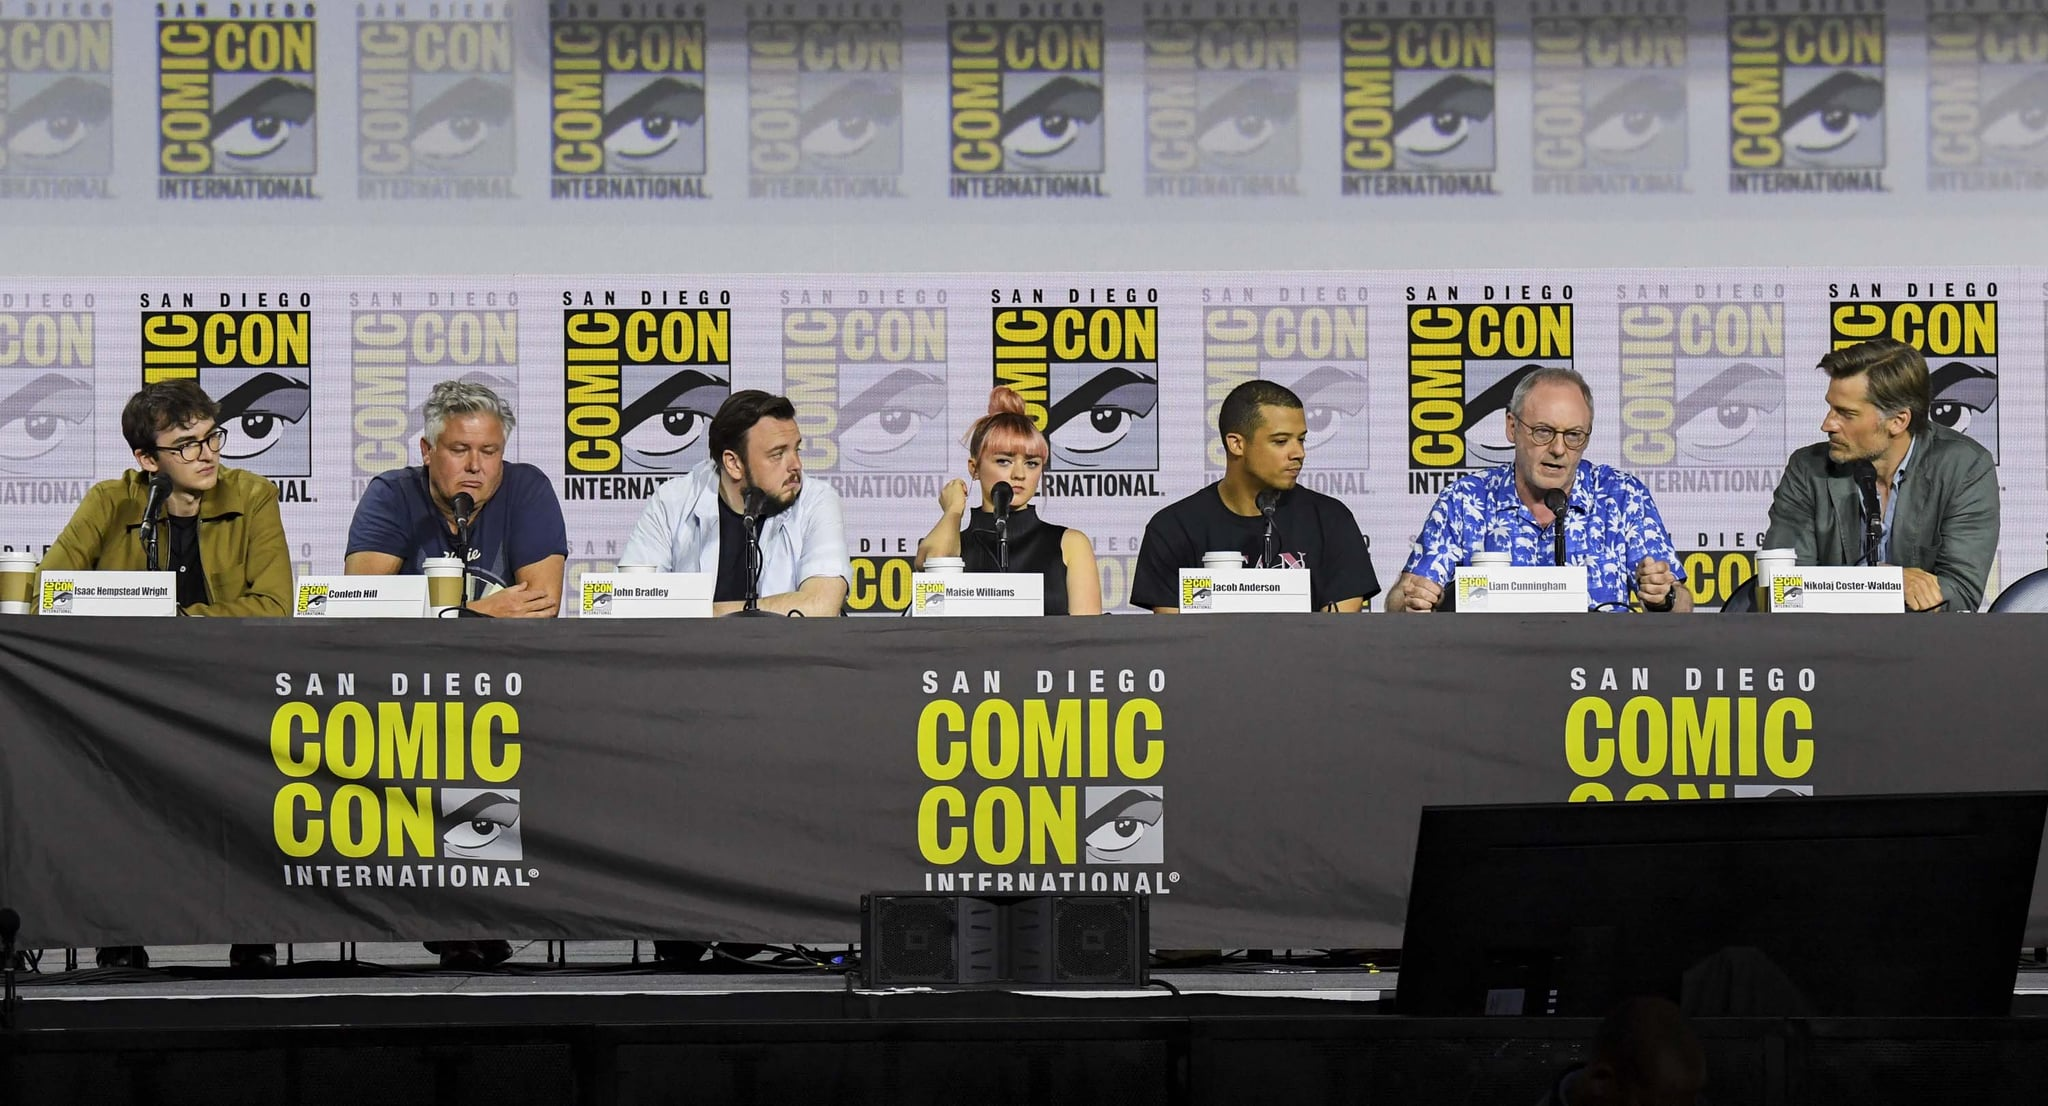 SAN DIEGO, CALIFORNIA - JULY 19: Liam Cunningham, Conleth Hill, Isaac Hempstead, Isaac Hempstead, Maisie Williams, Nikolaj Coster-Waldau, and Jacob Anderson at